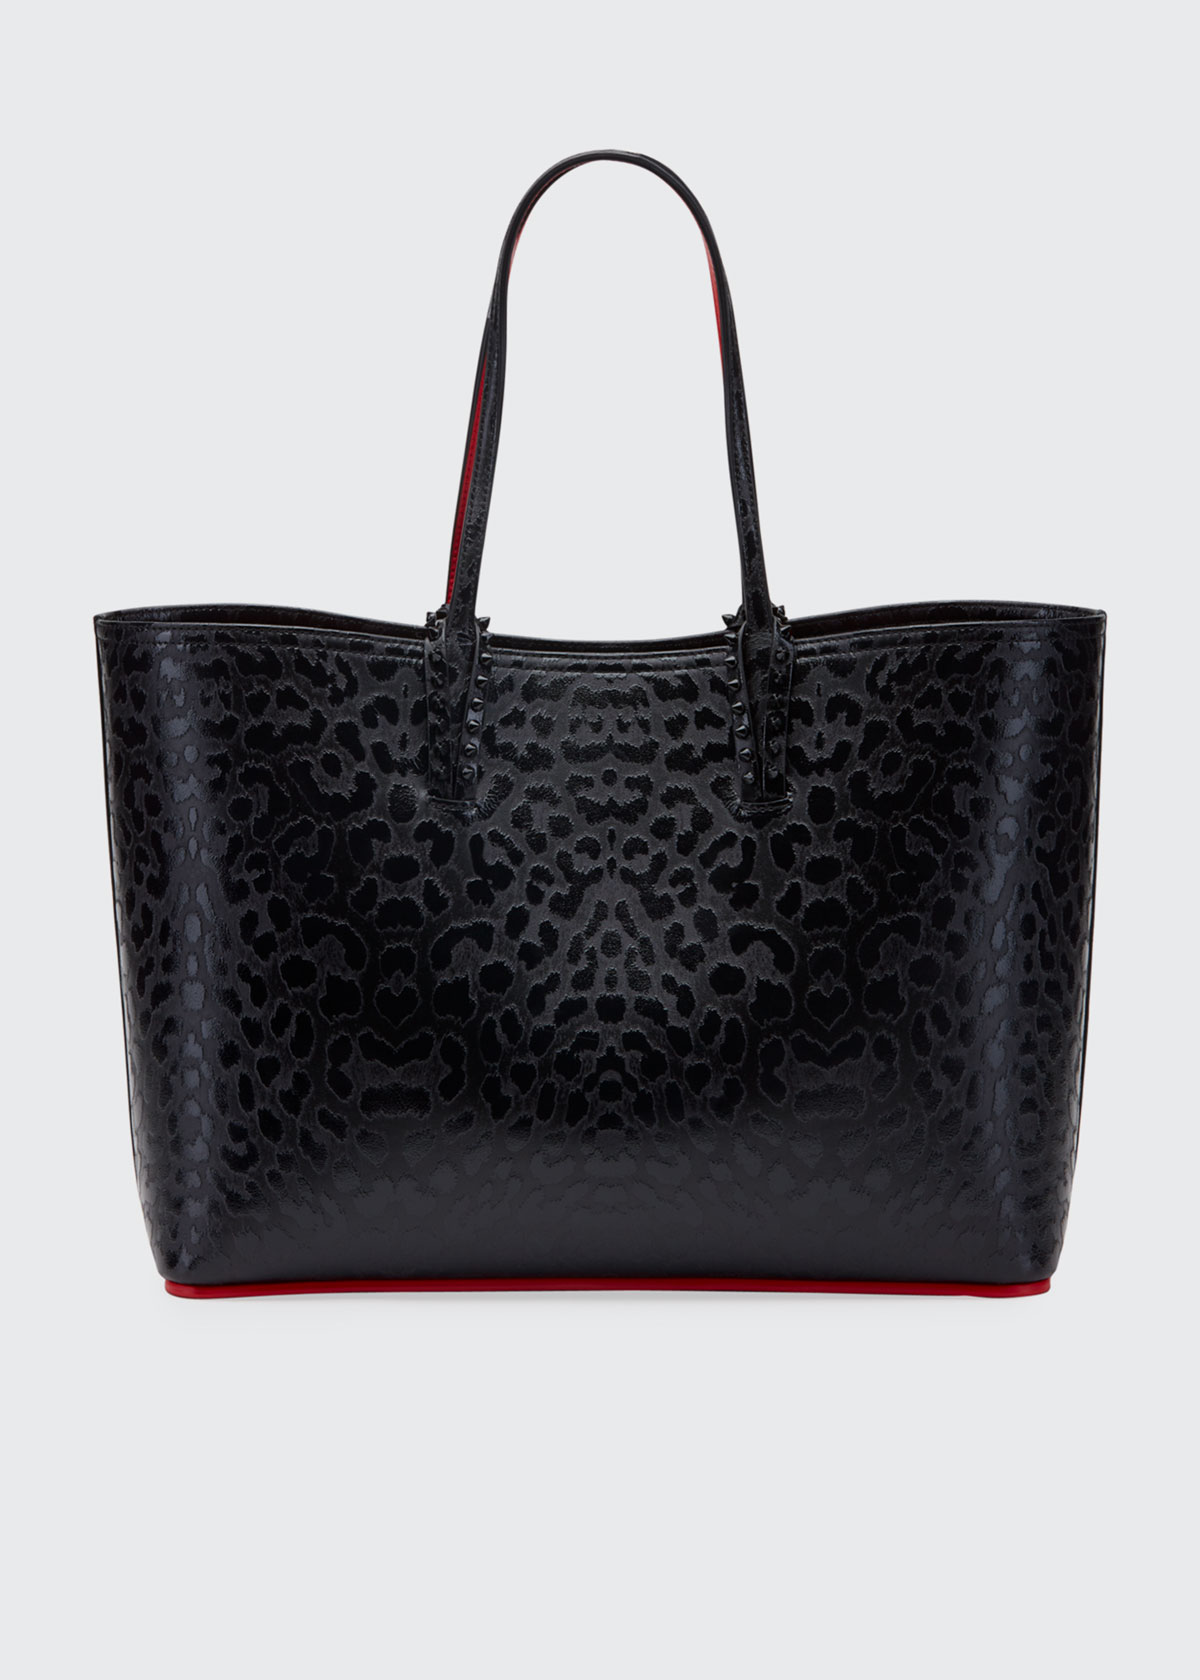 Christian Louboutin Totes CABATA LEOPARD-EMBOSSED TOTE BAG